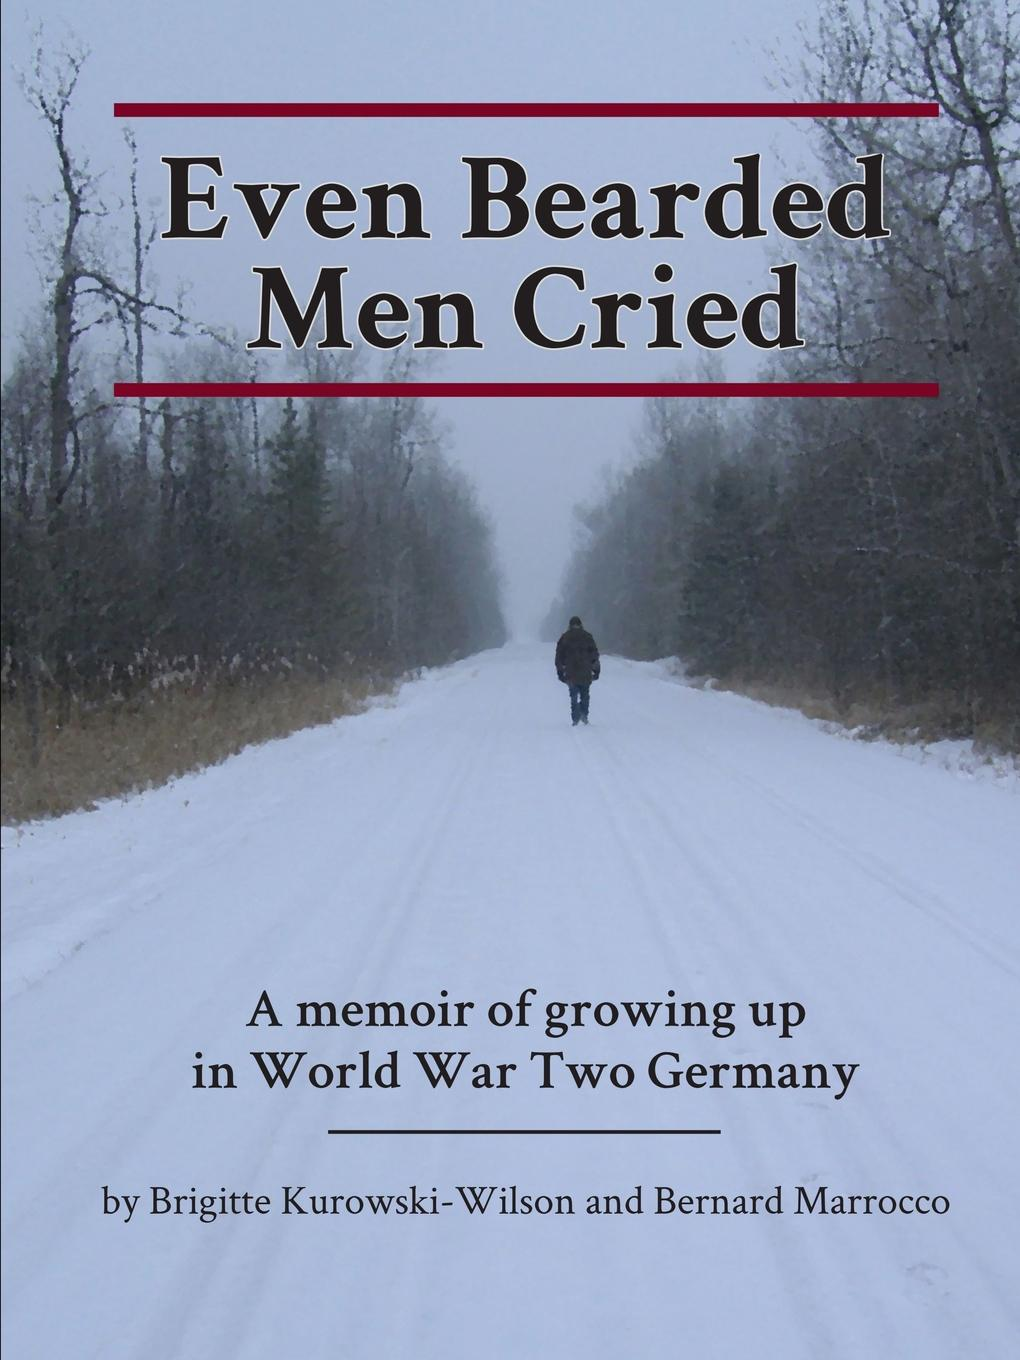 Brigitte Kurowski-Wilson, Bernard Marrocco Even Bearded Men Cried expelled